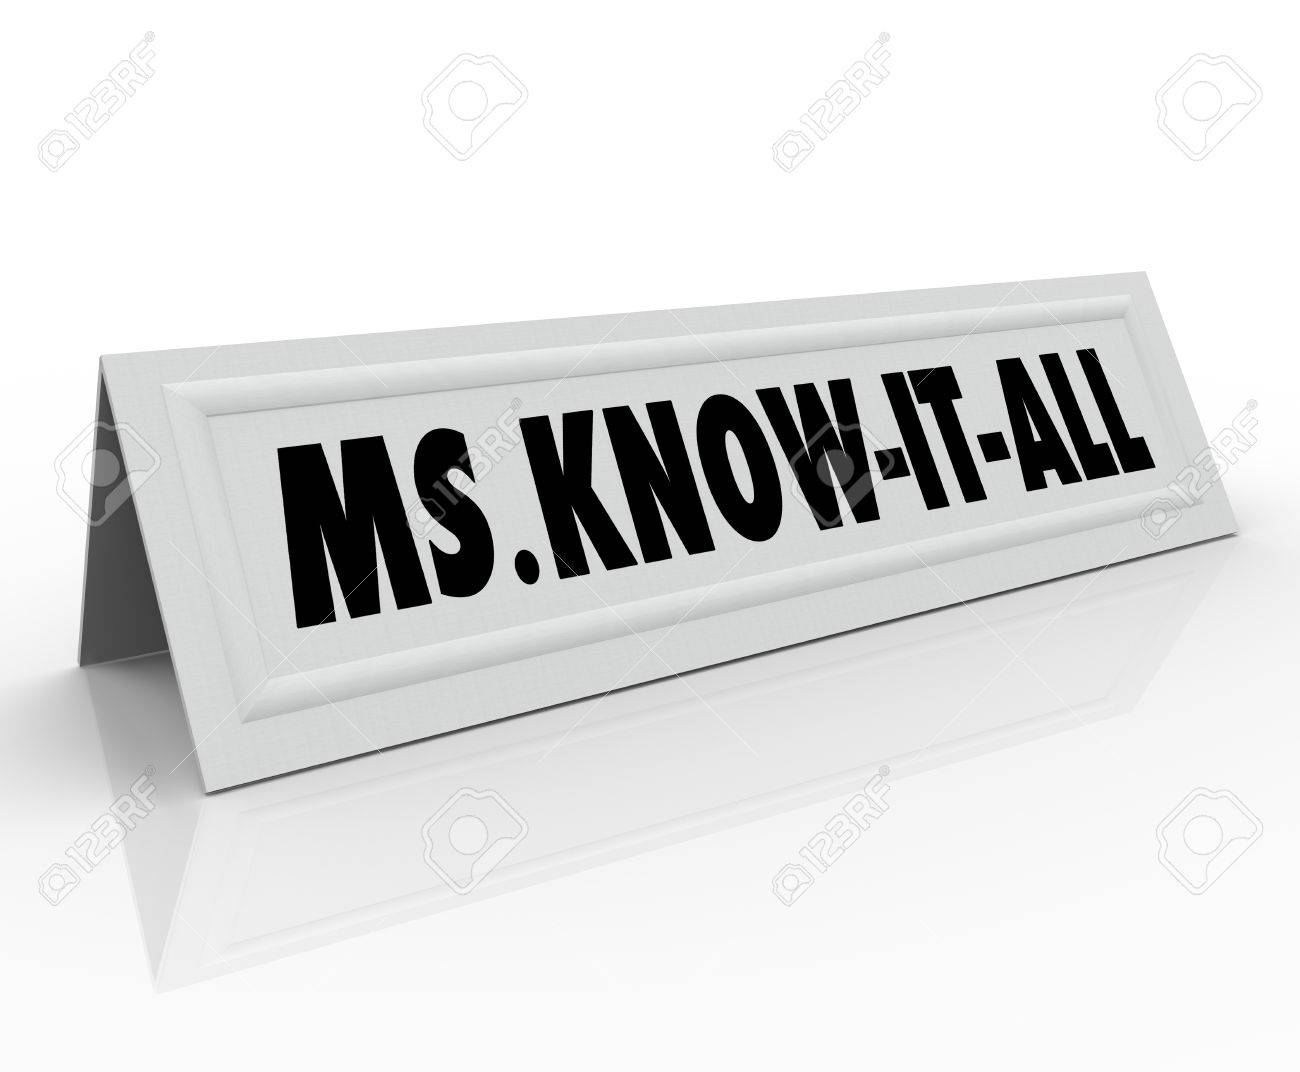 Ms. Know-It-All Name Or Words On A Tent Card For An Expert ...